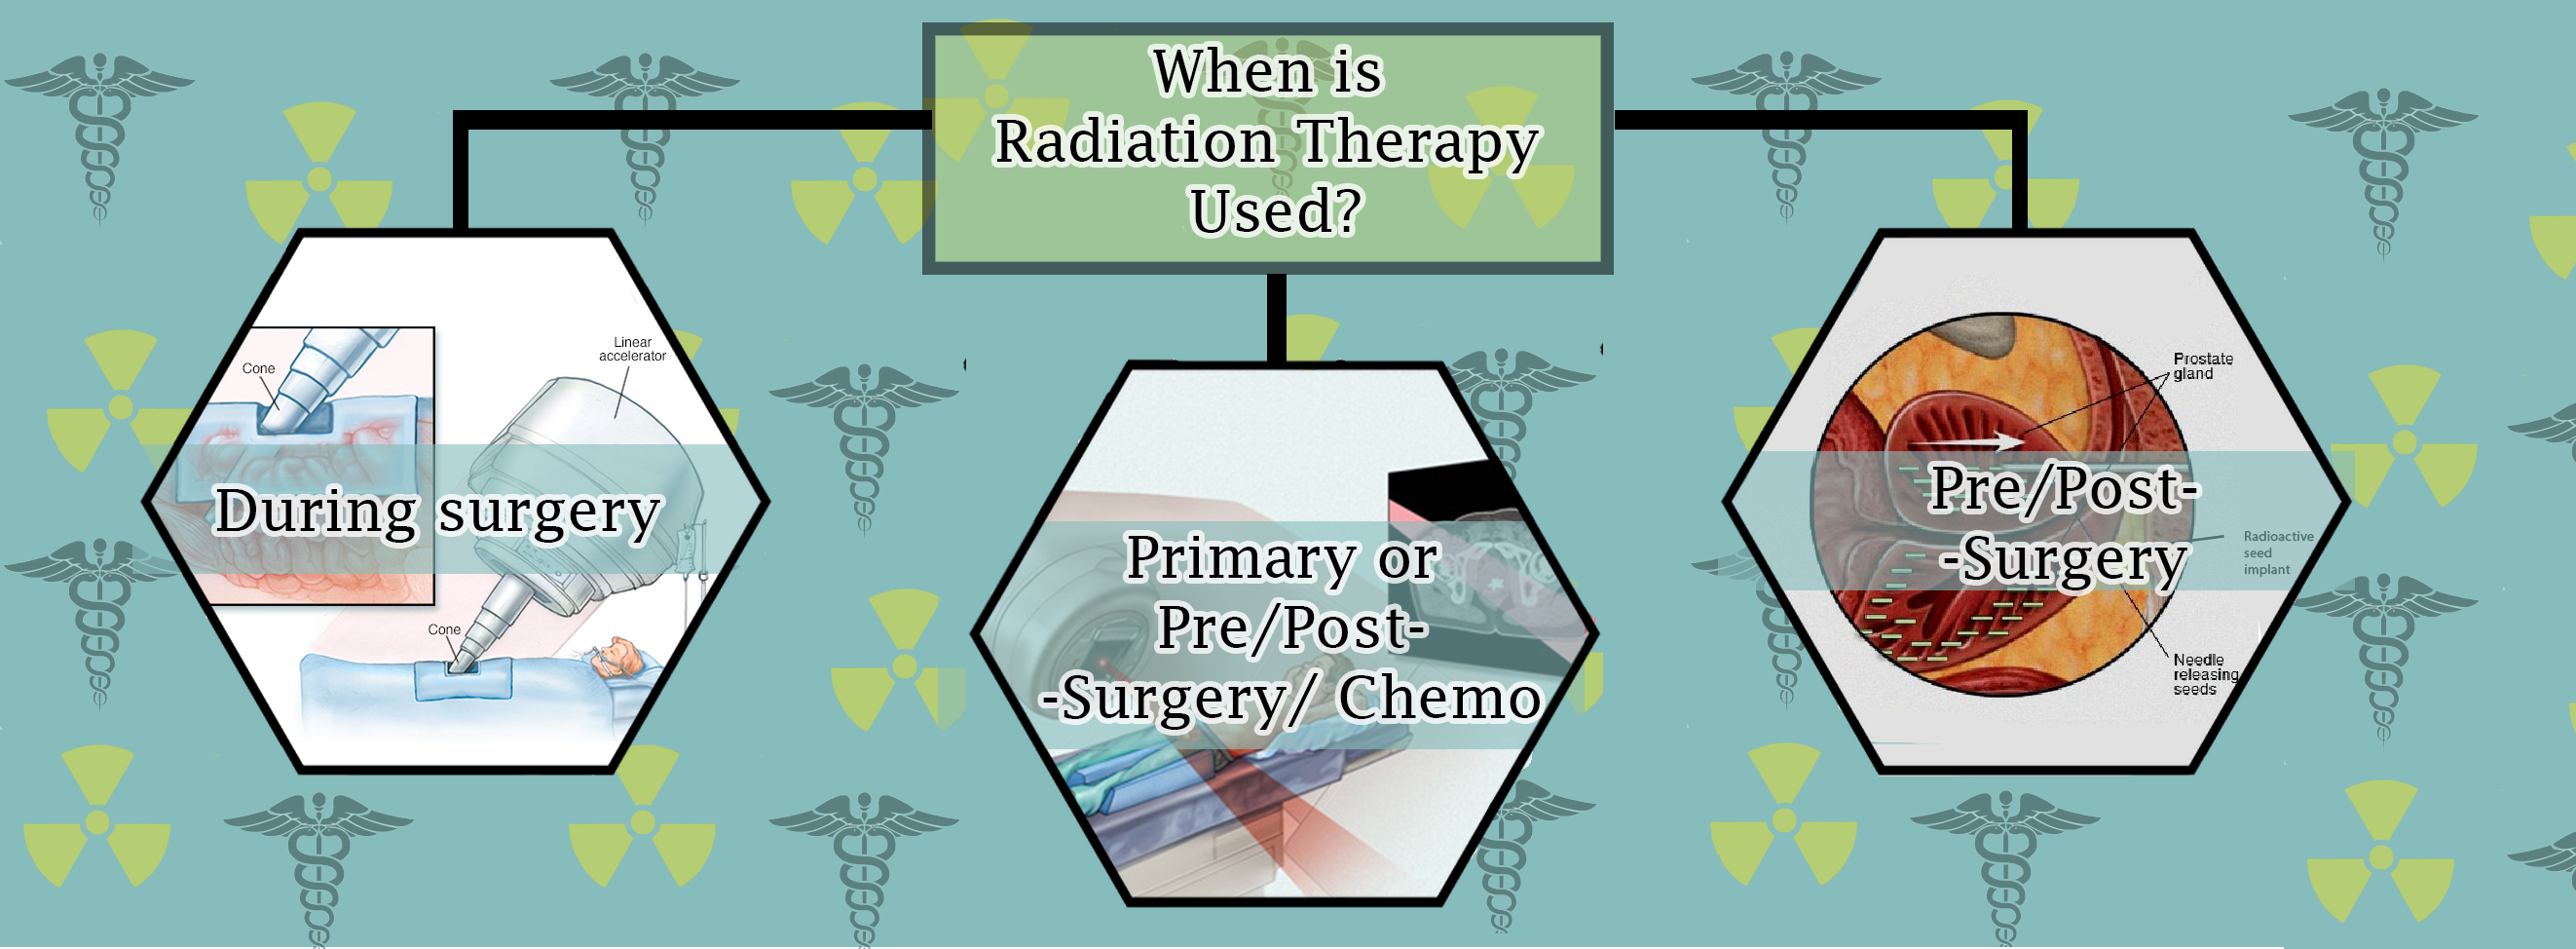 When is Radiation Therapy used?